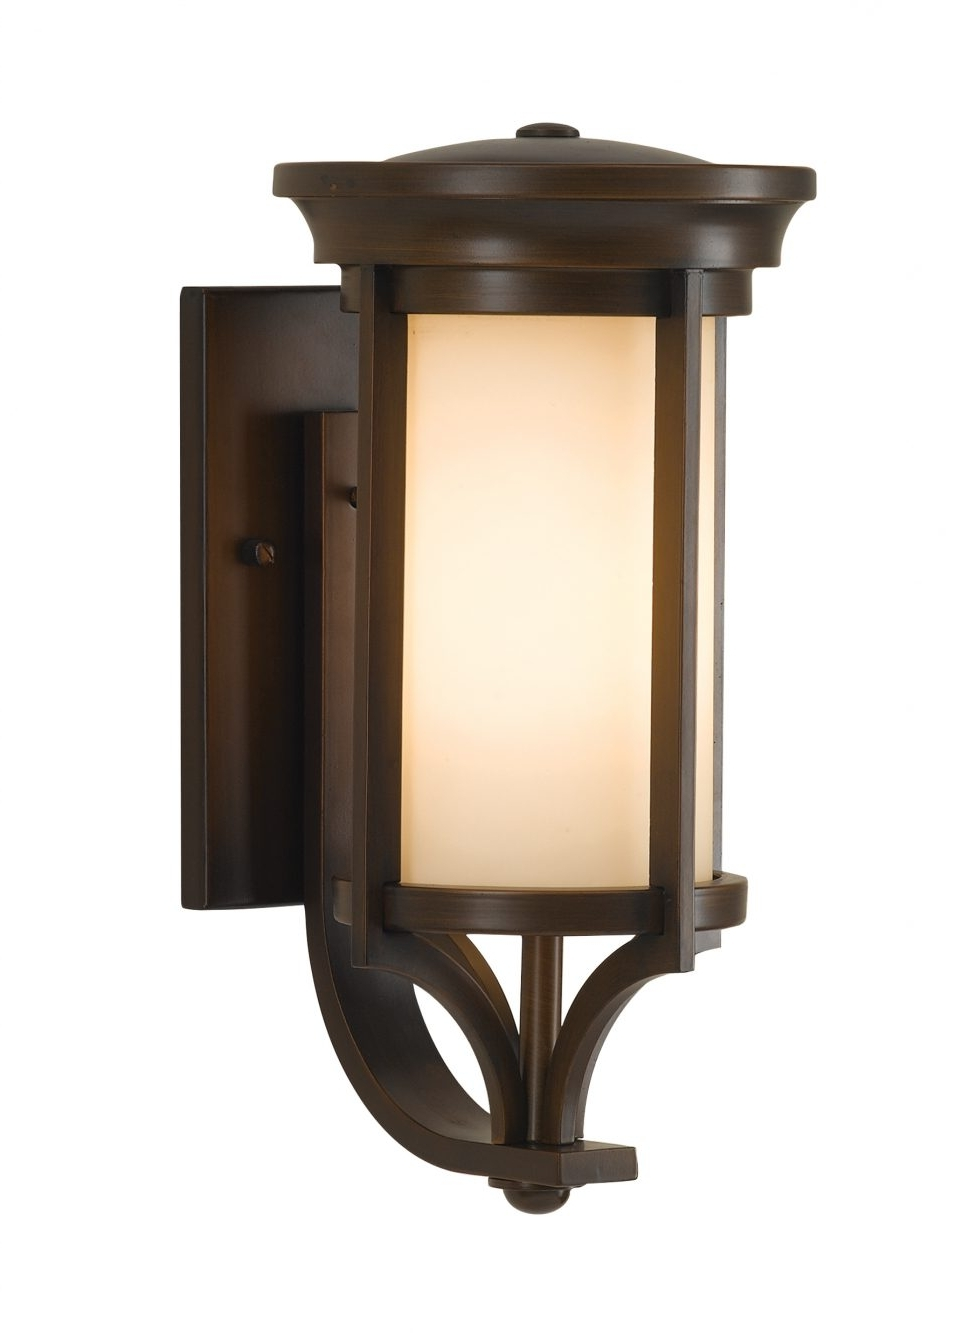 Well Known Outdoor Ceiling Light With Outlet Regarding Electrical Wiring : Guiding Outdoor Ceiling Light Fixture With (View 13 of 20)